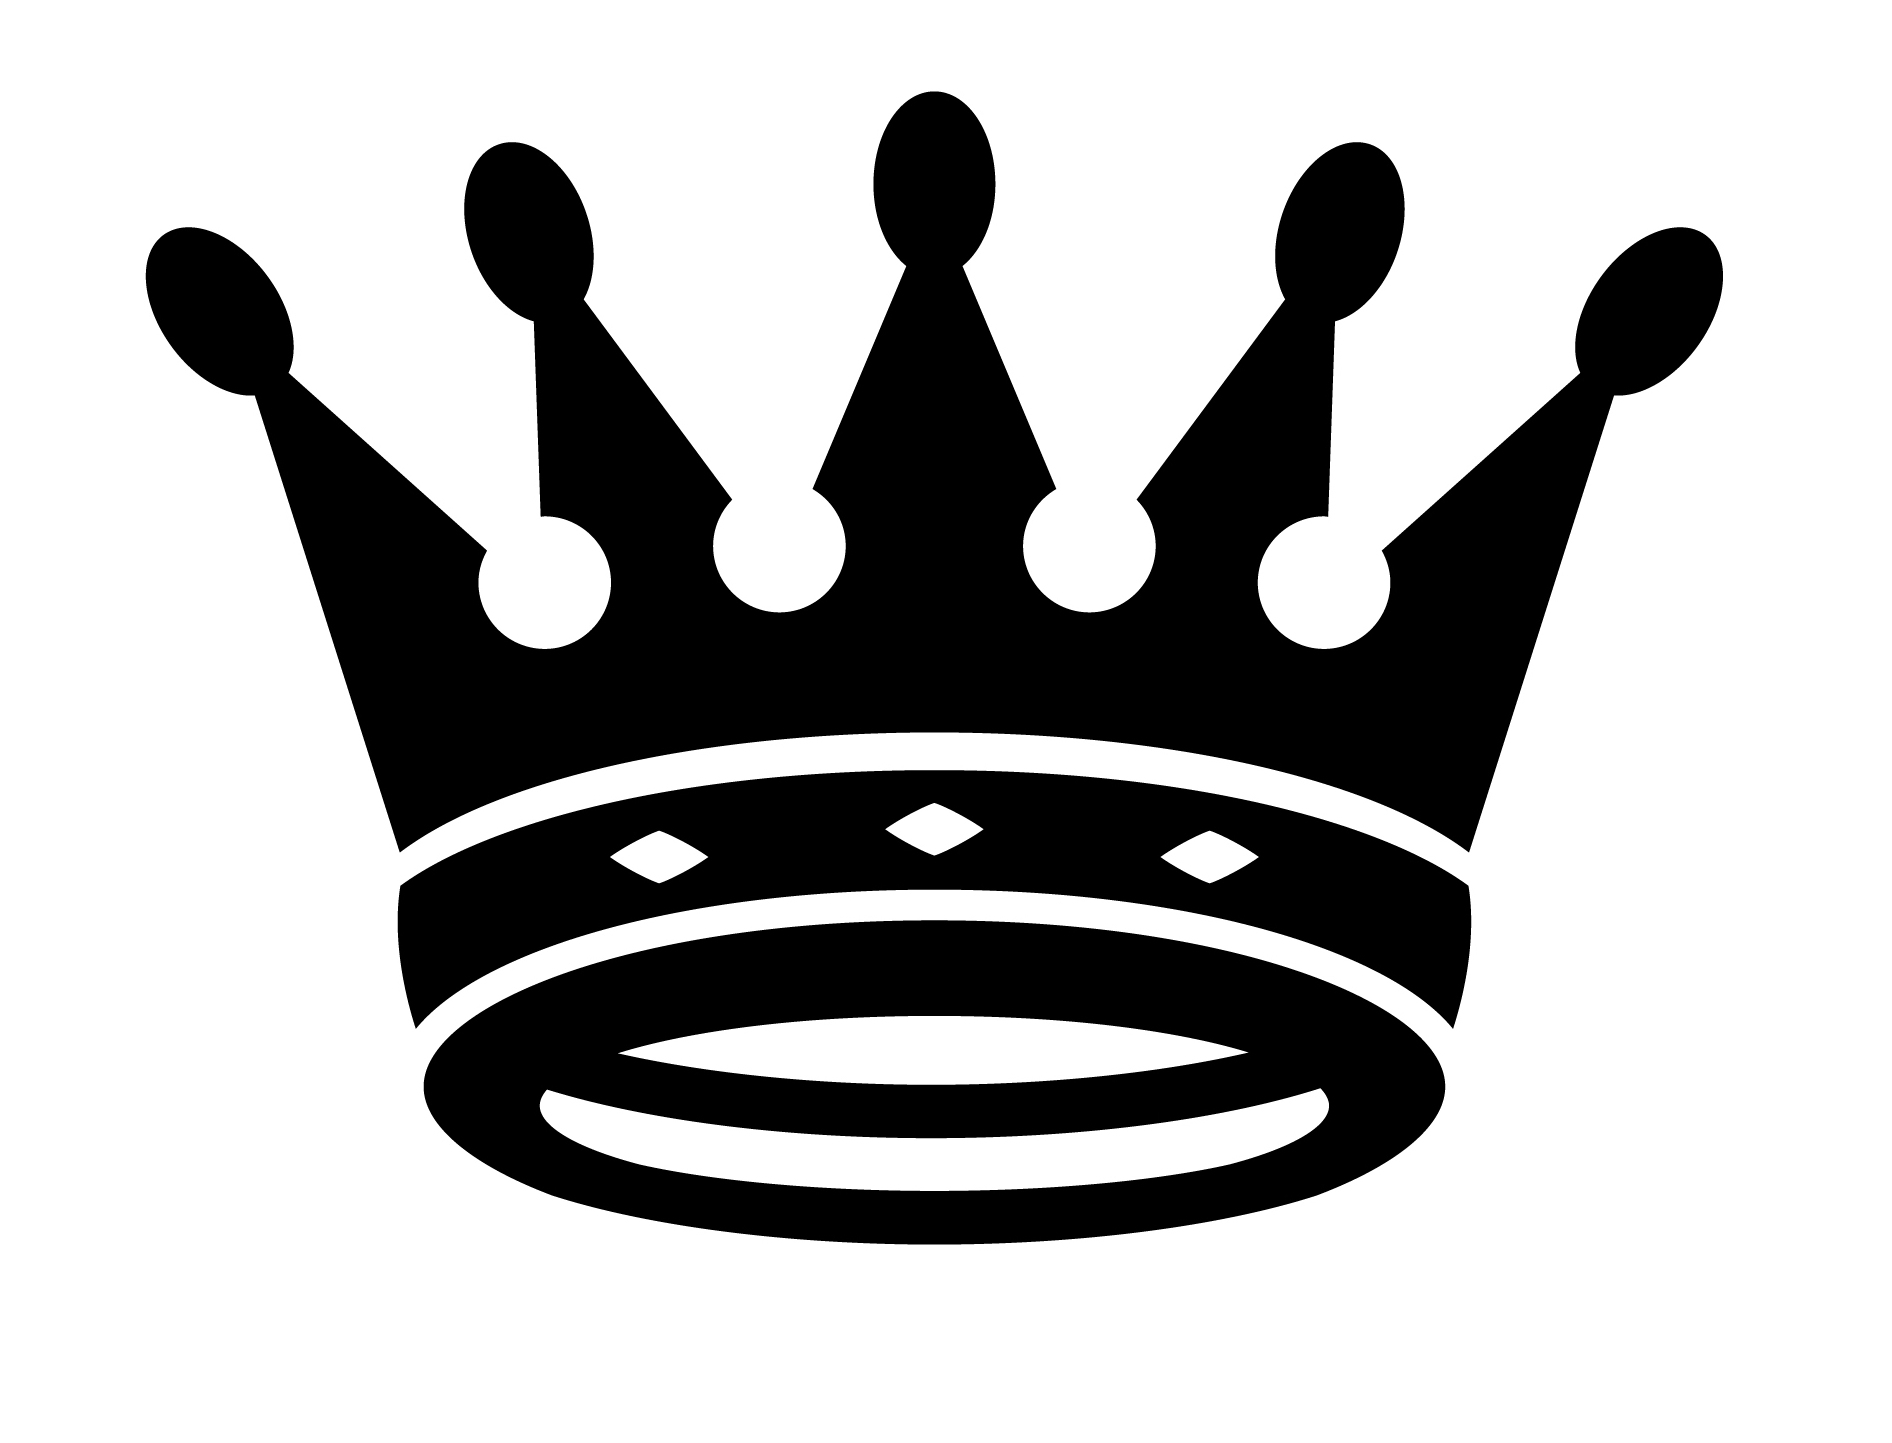 crown king black dating site King cancer a queen's crown need to be found by this king your profile will automatically be shown on related black dating sites or to related users.